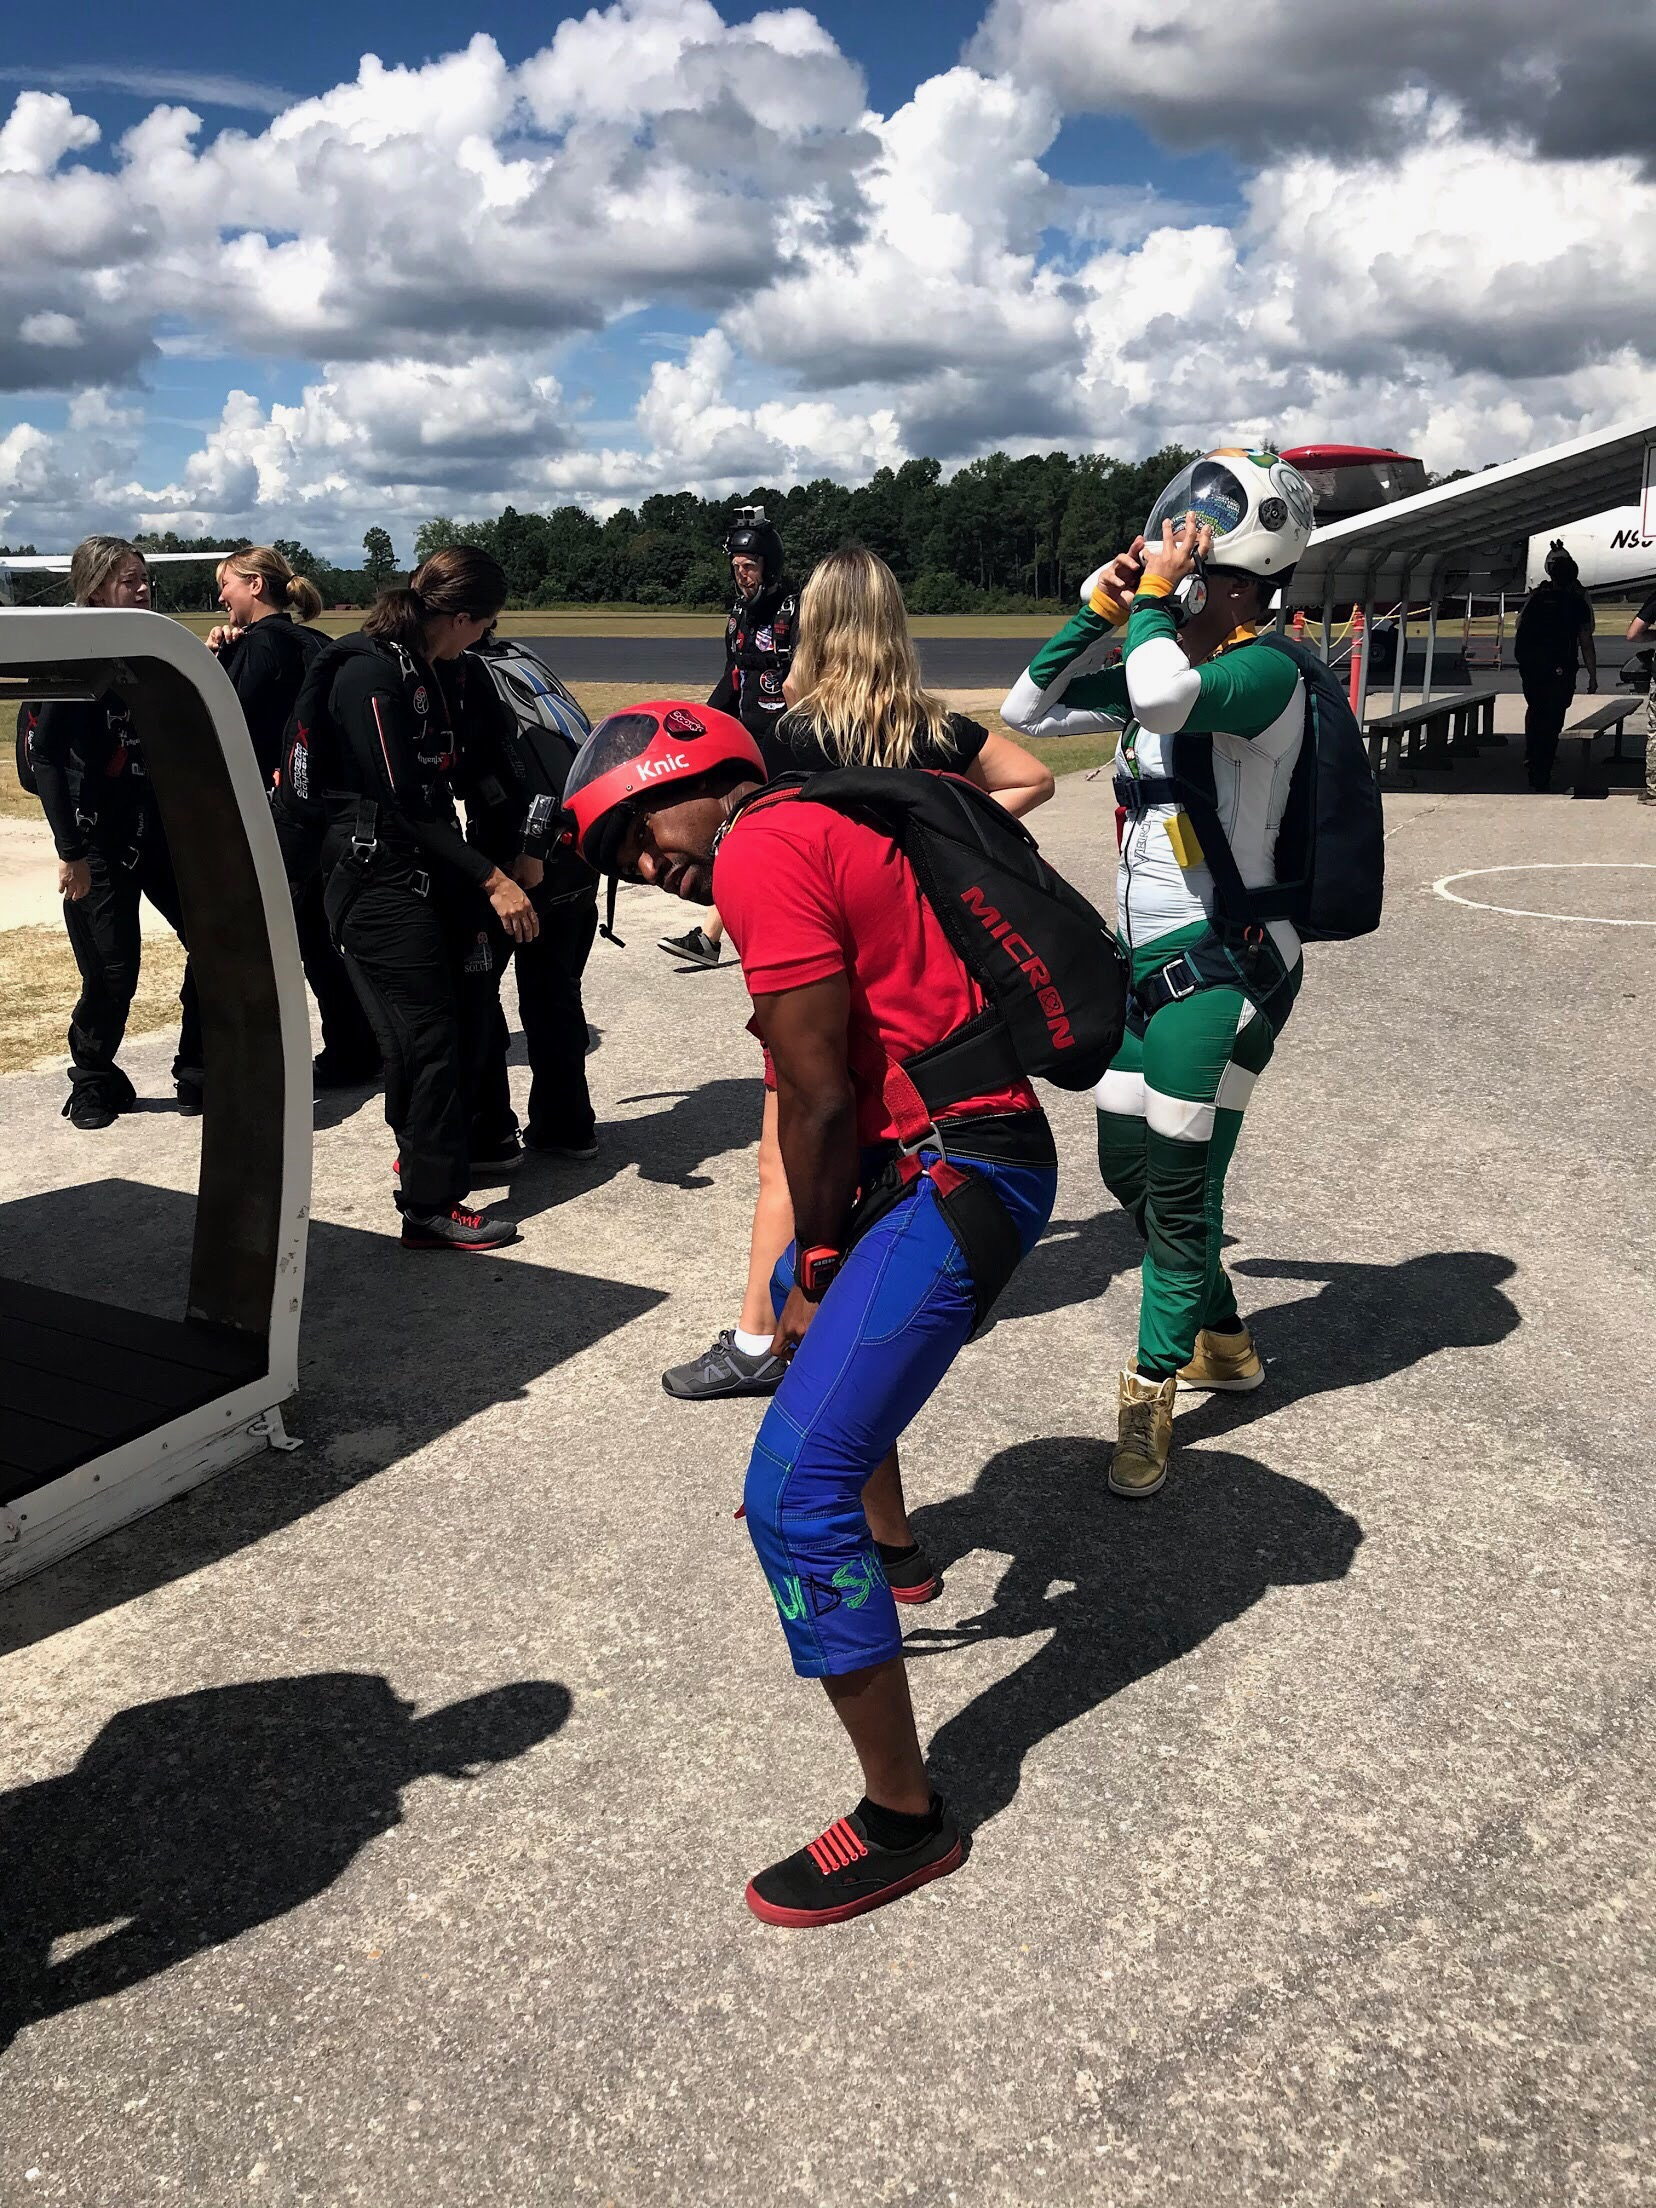 Nick adjusts the straps on his parachute rig prior to boarding the jump plane in North Carolina.  Photo credit: Danielle Williams